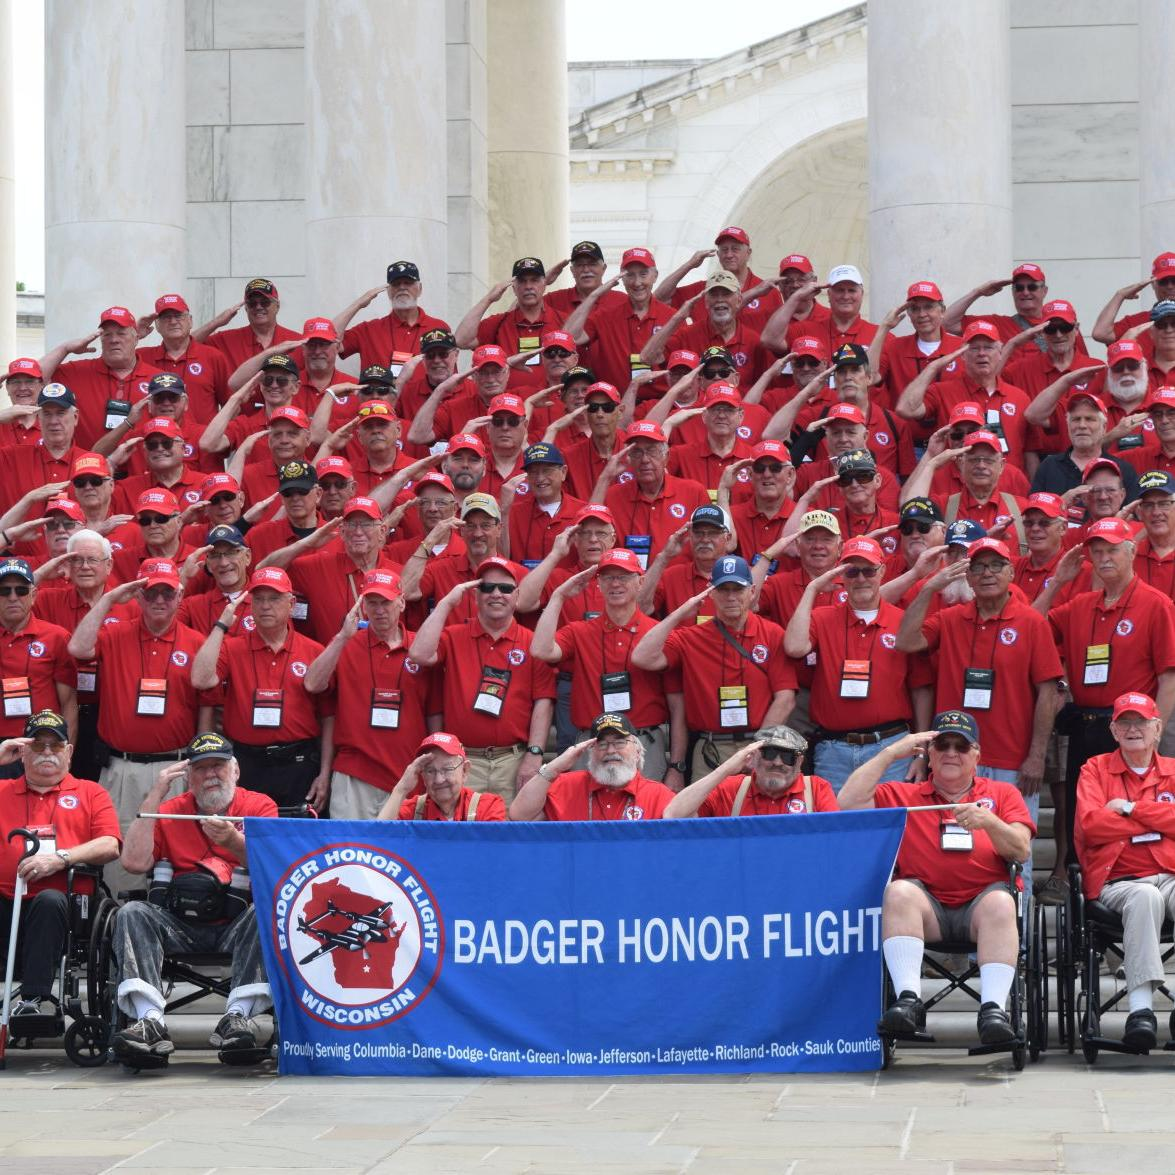 Badger Honor Flight May 12, 2018